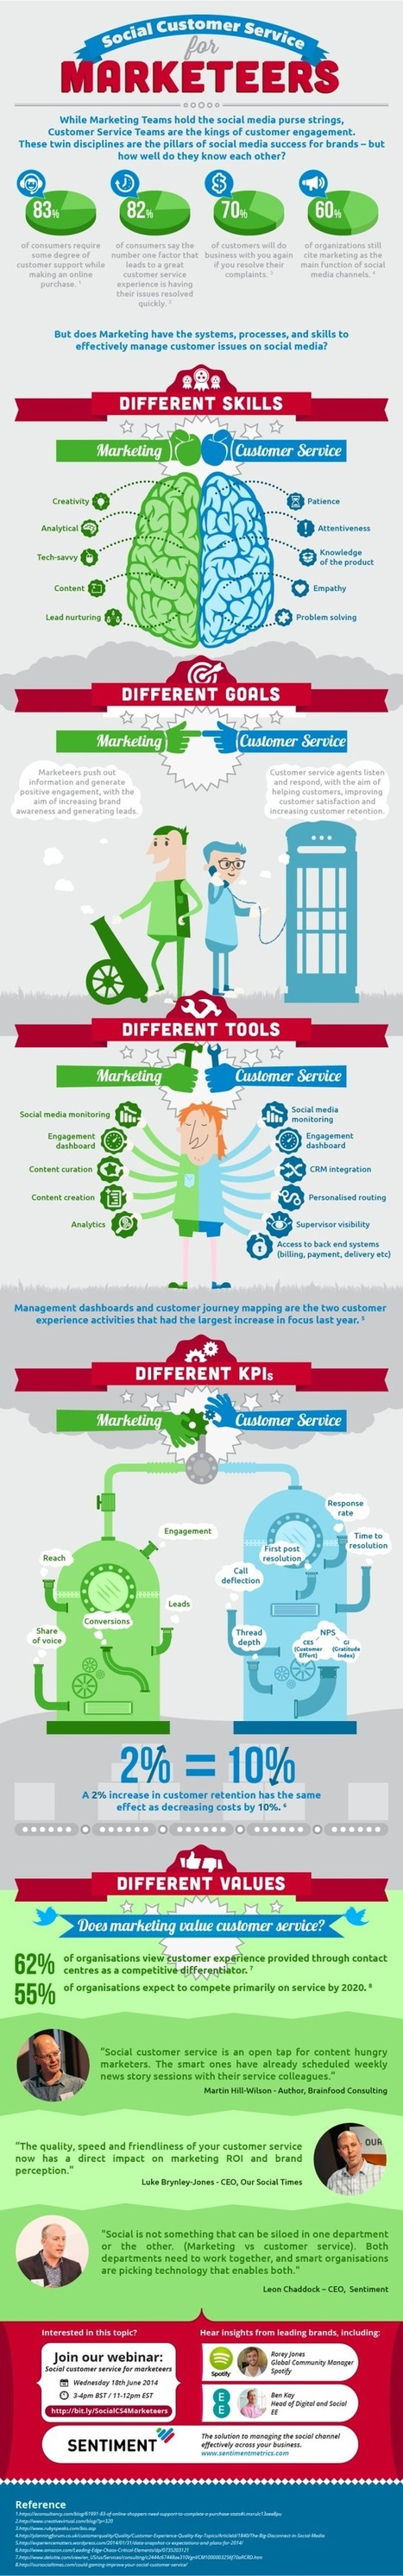 Social Customer Service for Marketeers - Marketing Technology Blog | Health | Scoop.it